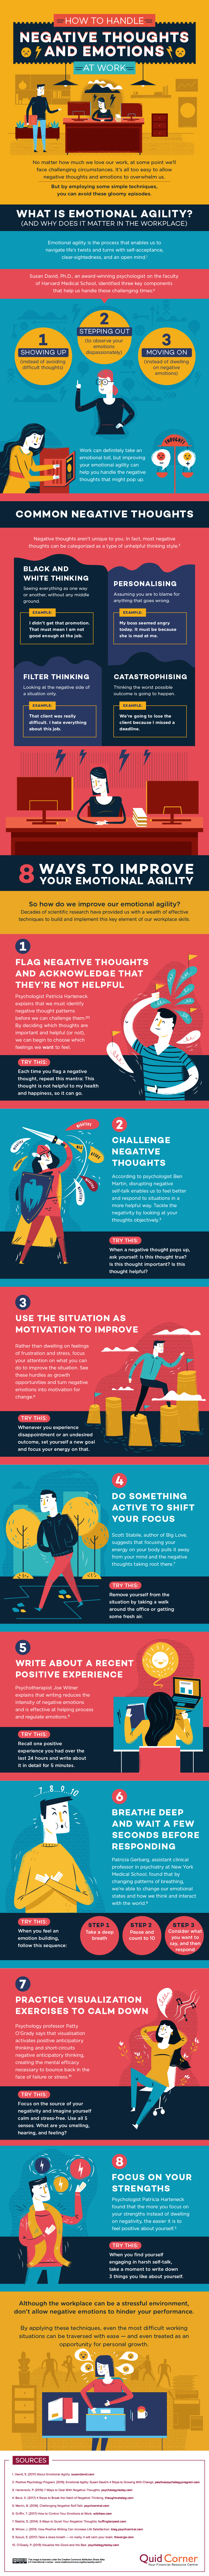 Design_How-to-Handle-Negative-Thoughts-and-Emotions-at-Work